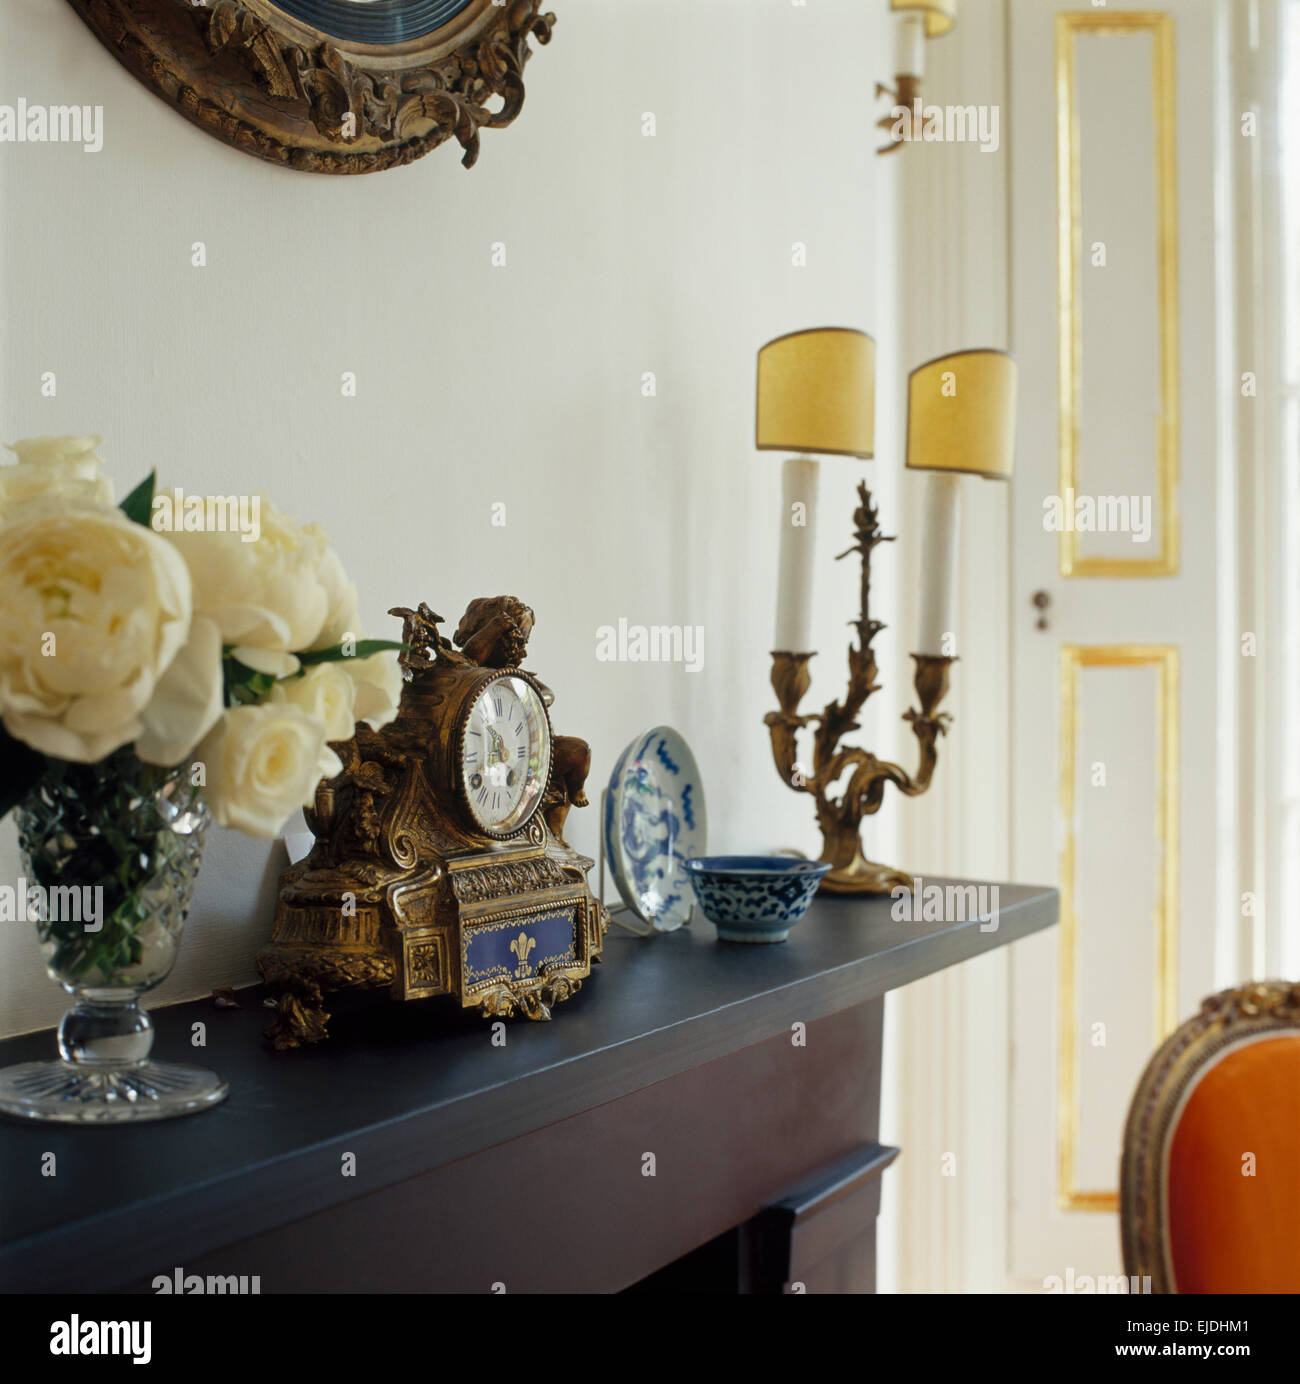 Close-up of a vase of white roses and antique clock on mantelpiece with a vintage brass candlestick - Stock Image